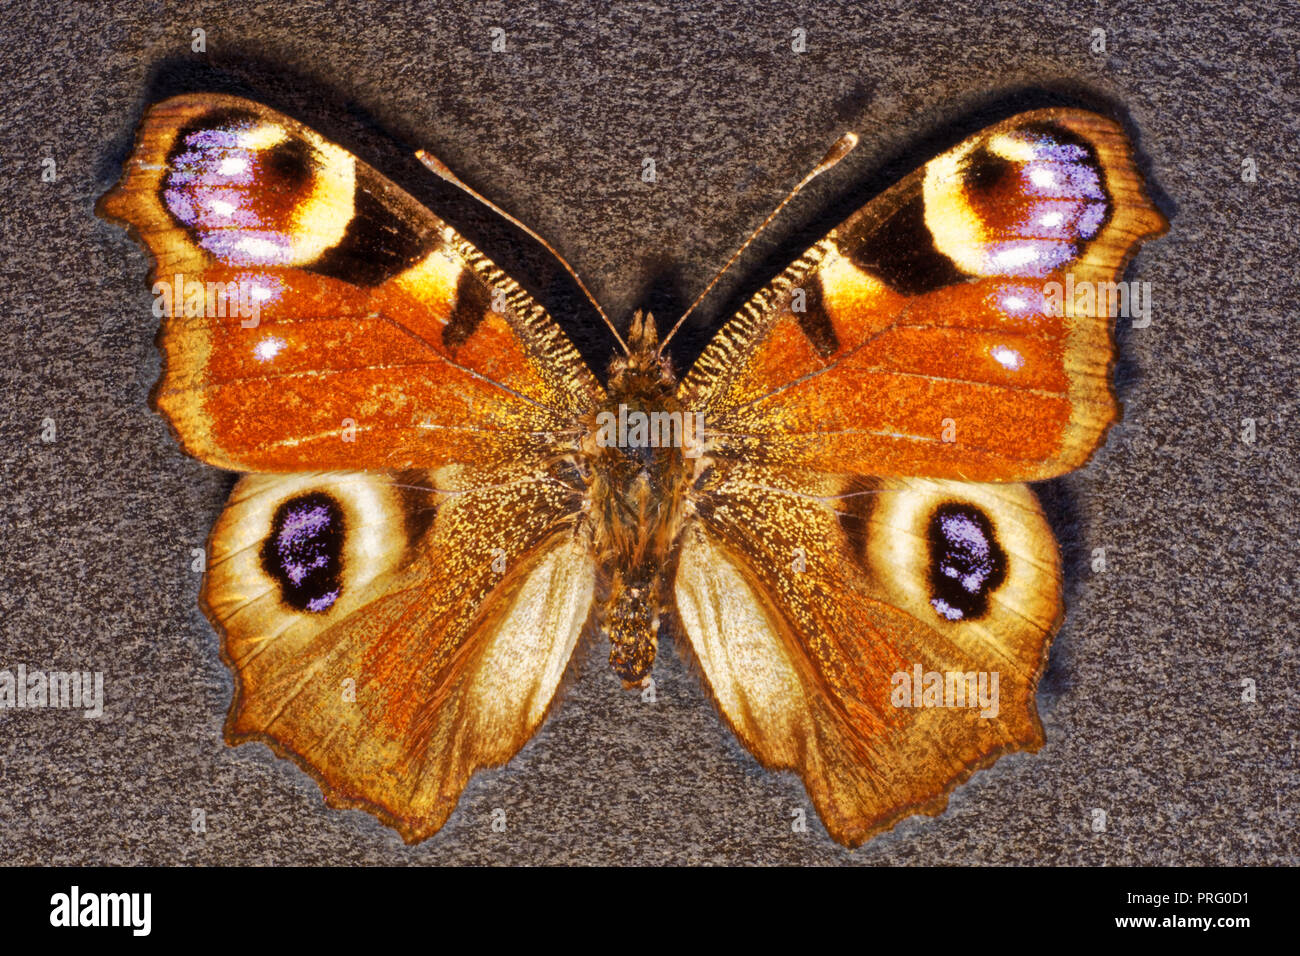 Peacock eye diurnal,insects,butterflies,Russia Stock Photo